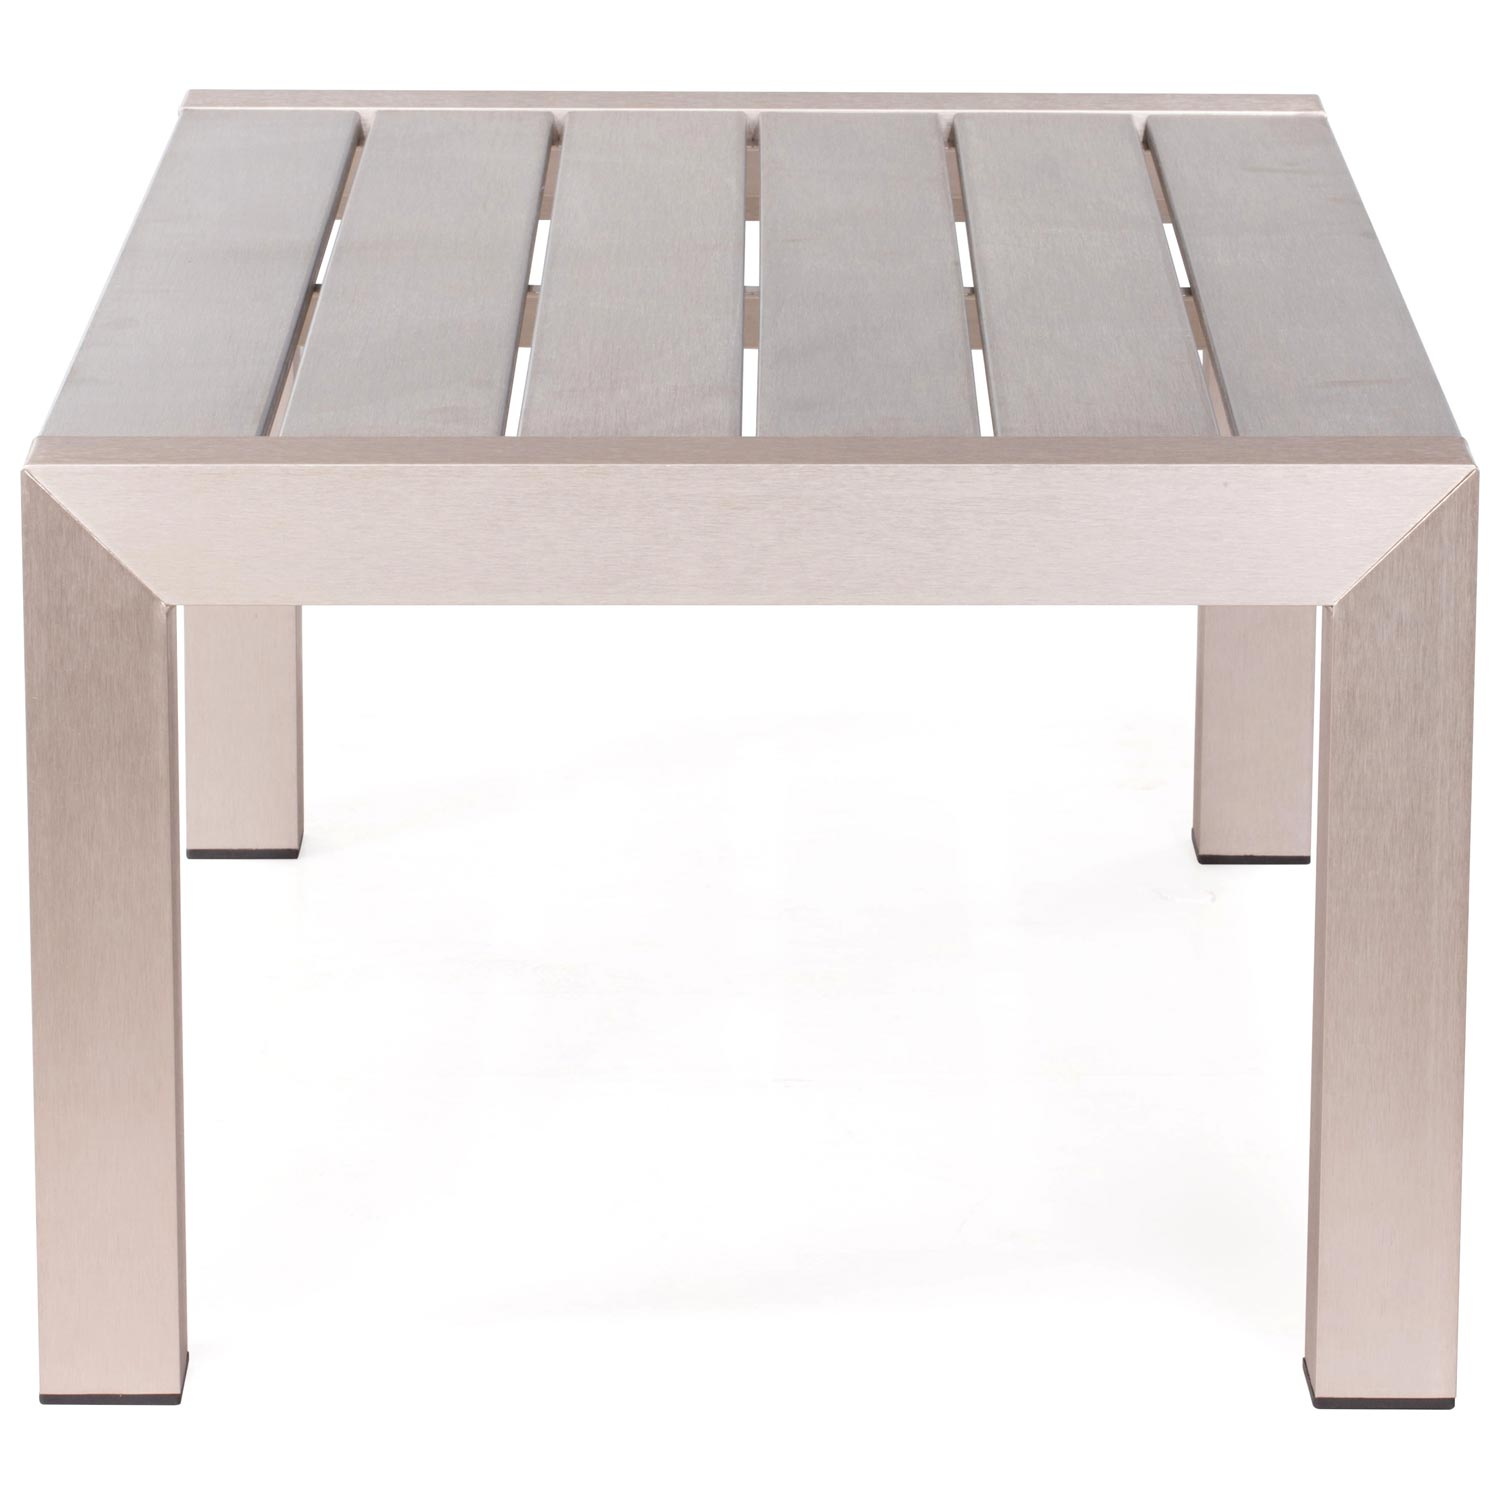 Cosmopolitan Patio Coffee Table - Brushed Aluminum, Teak - ZM-701860